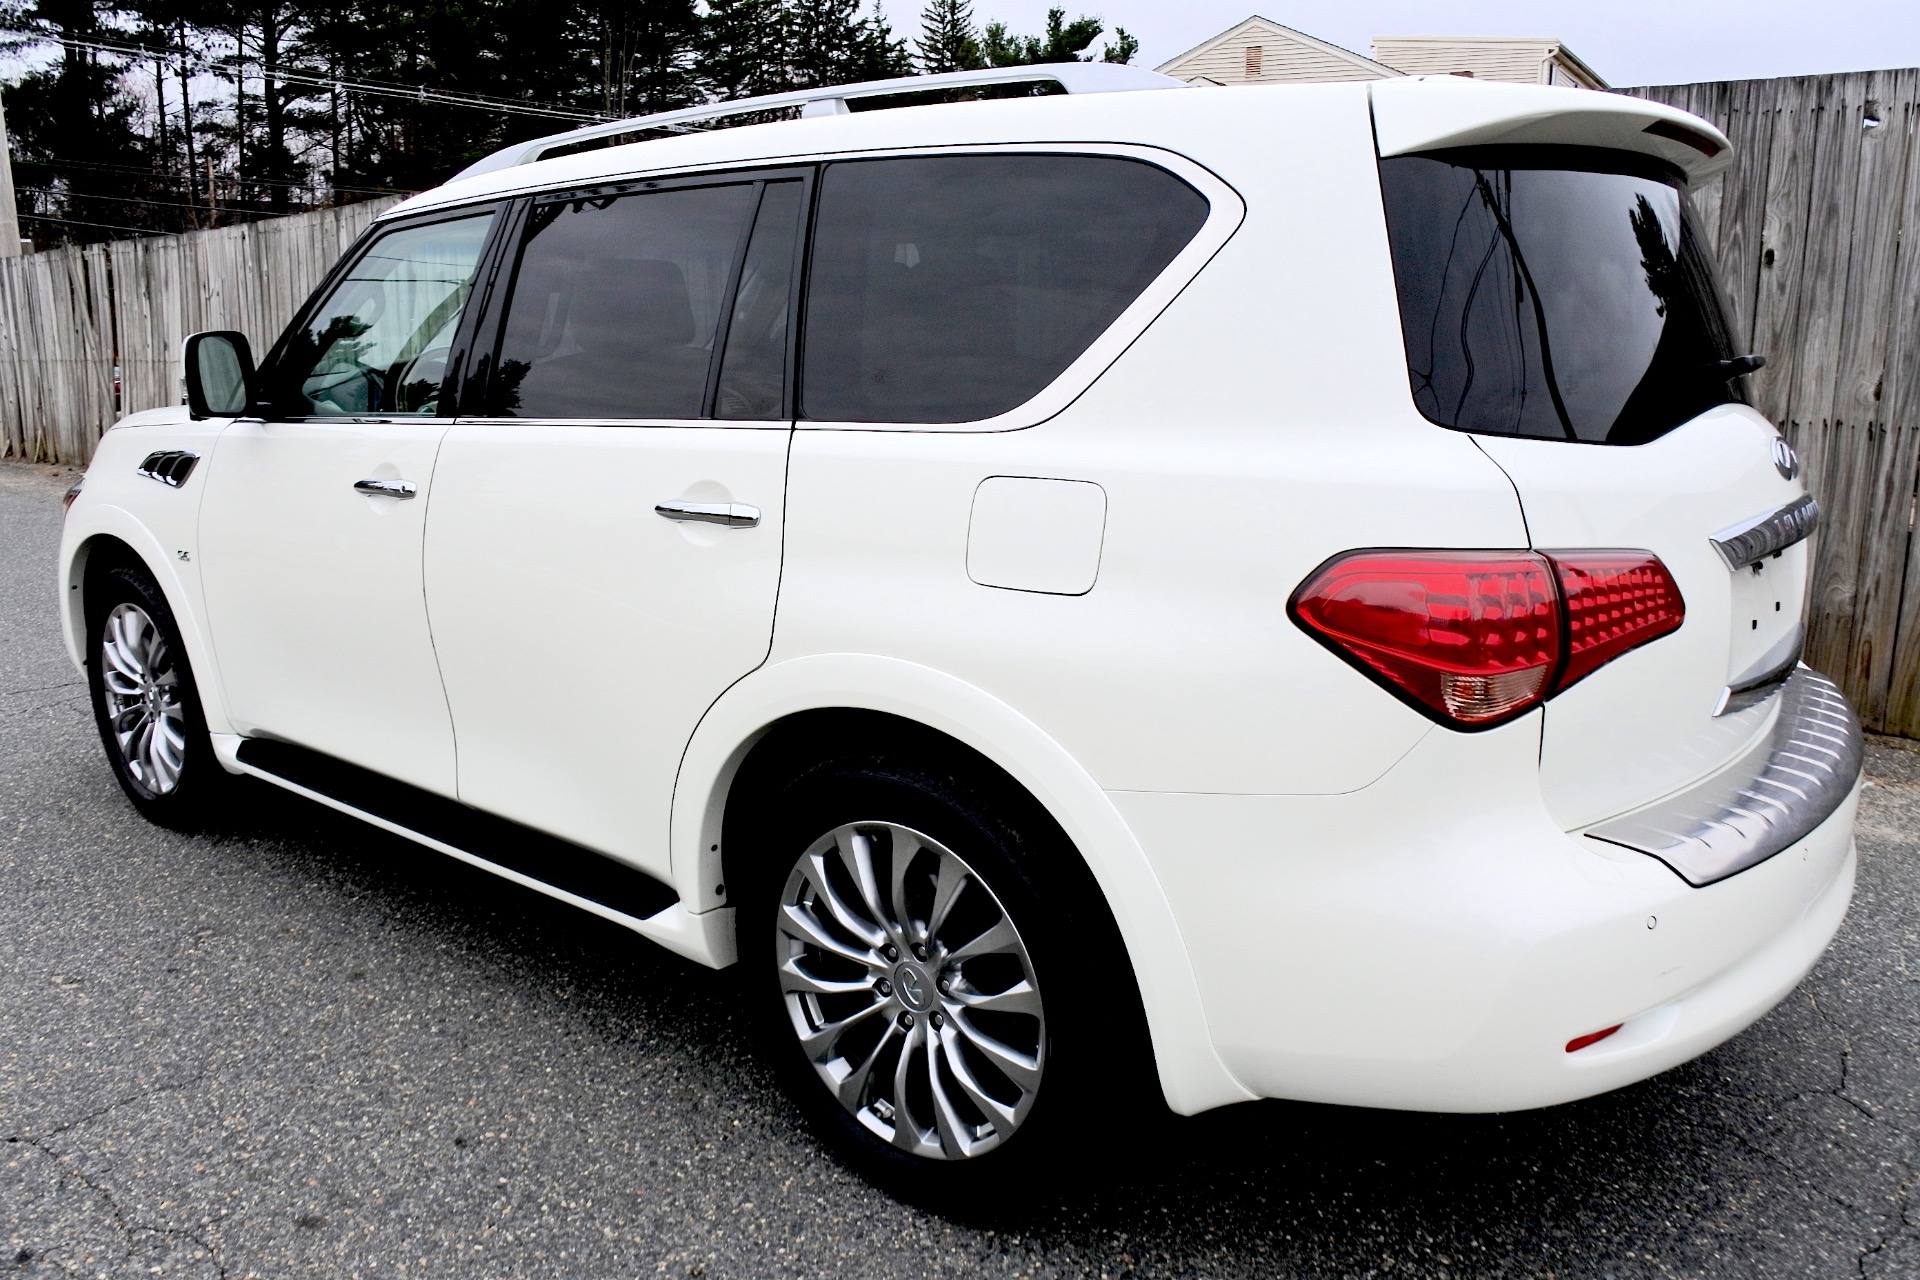 Used 2015 Infiniti Qx80 Limited 4WD Used 2015 Infiniti Qx80 Limited 4WD for sale  at Metro West Motorcars LLC in Shrewsbury MA 3